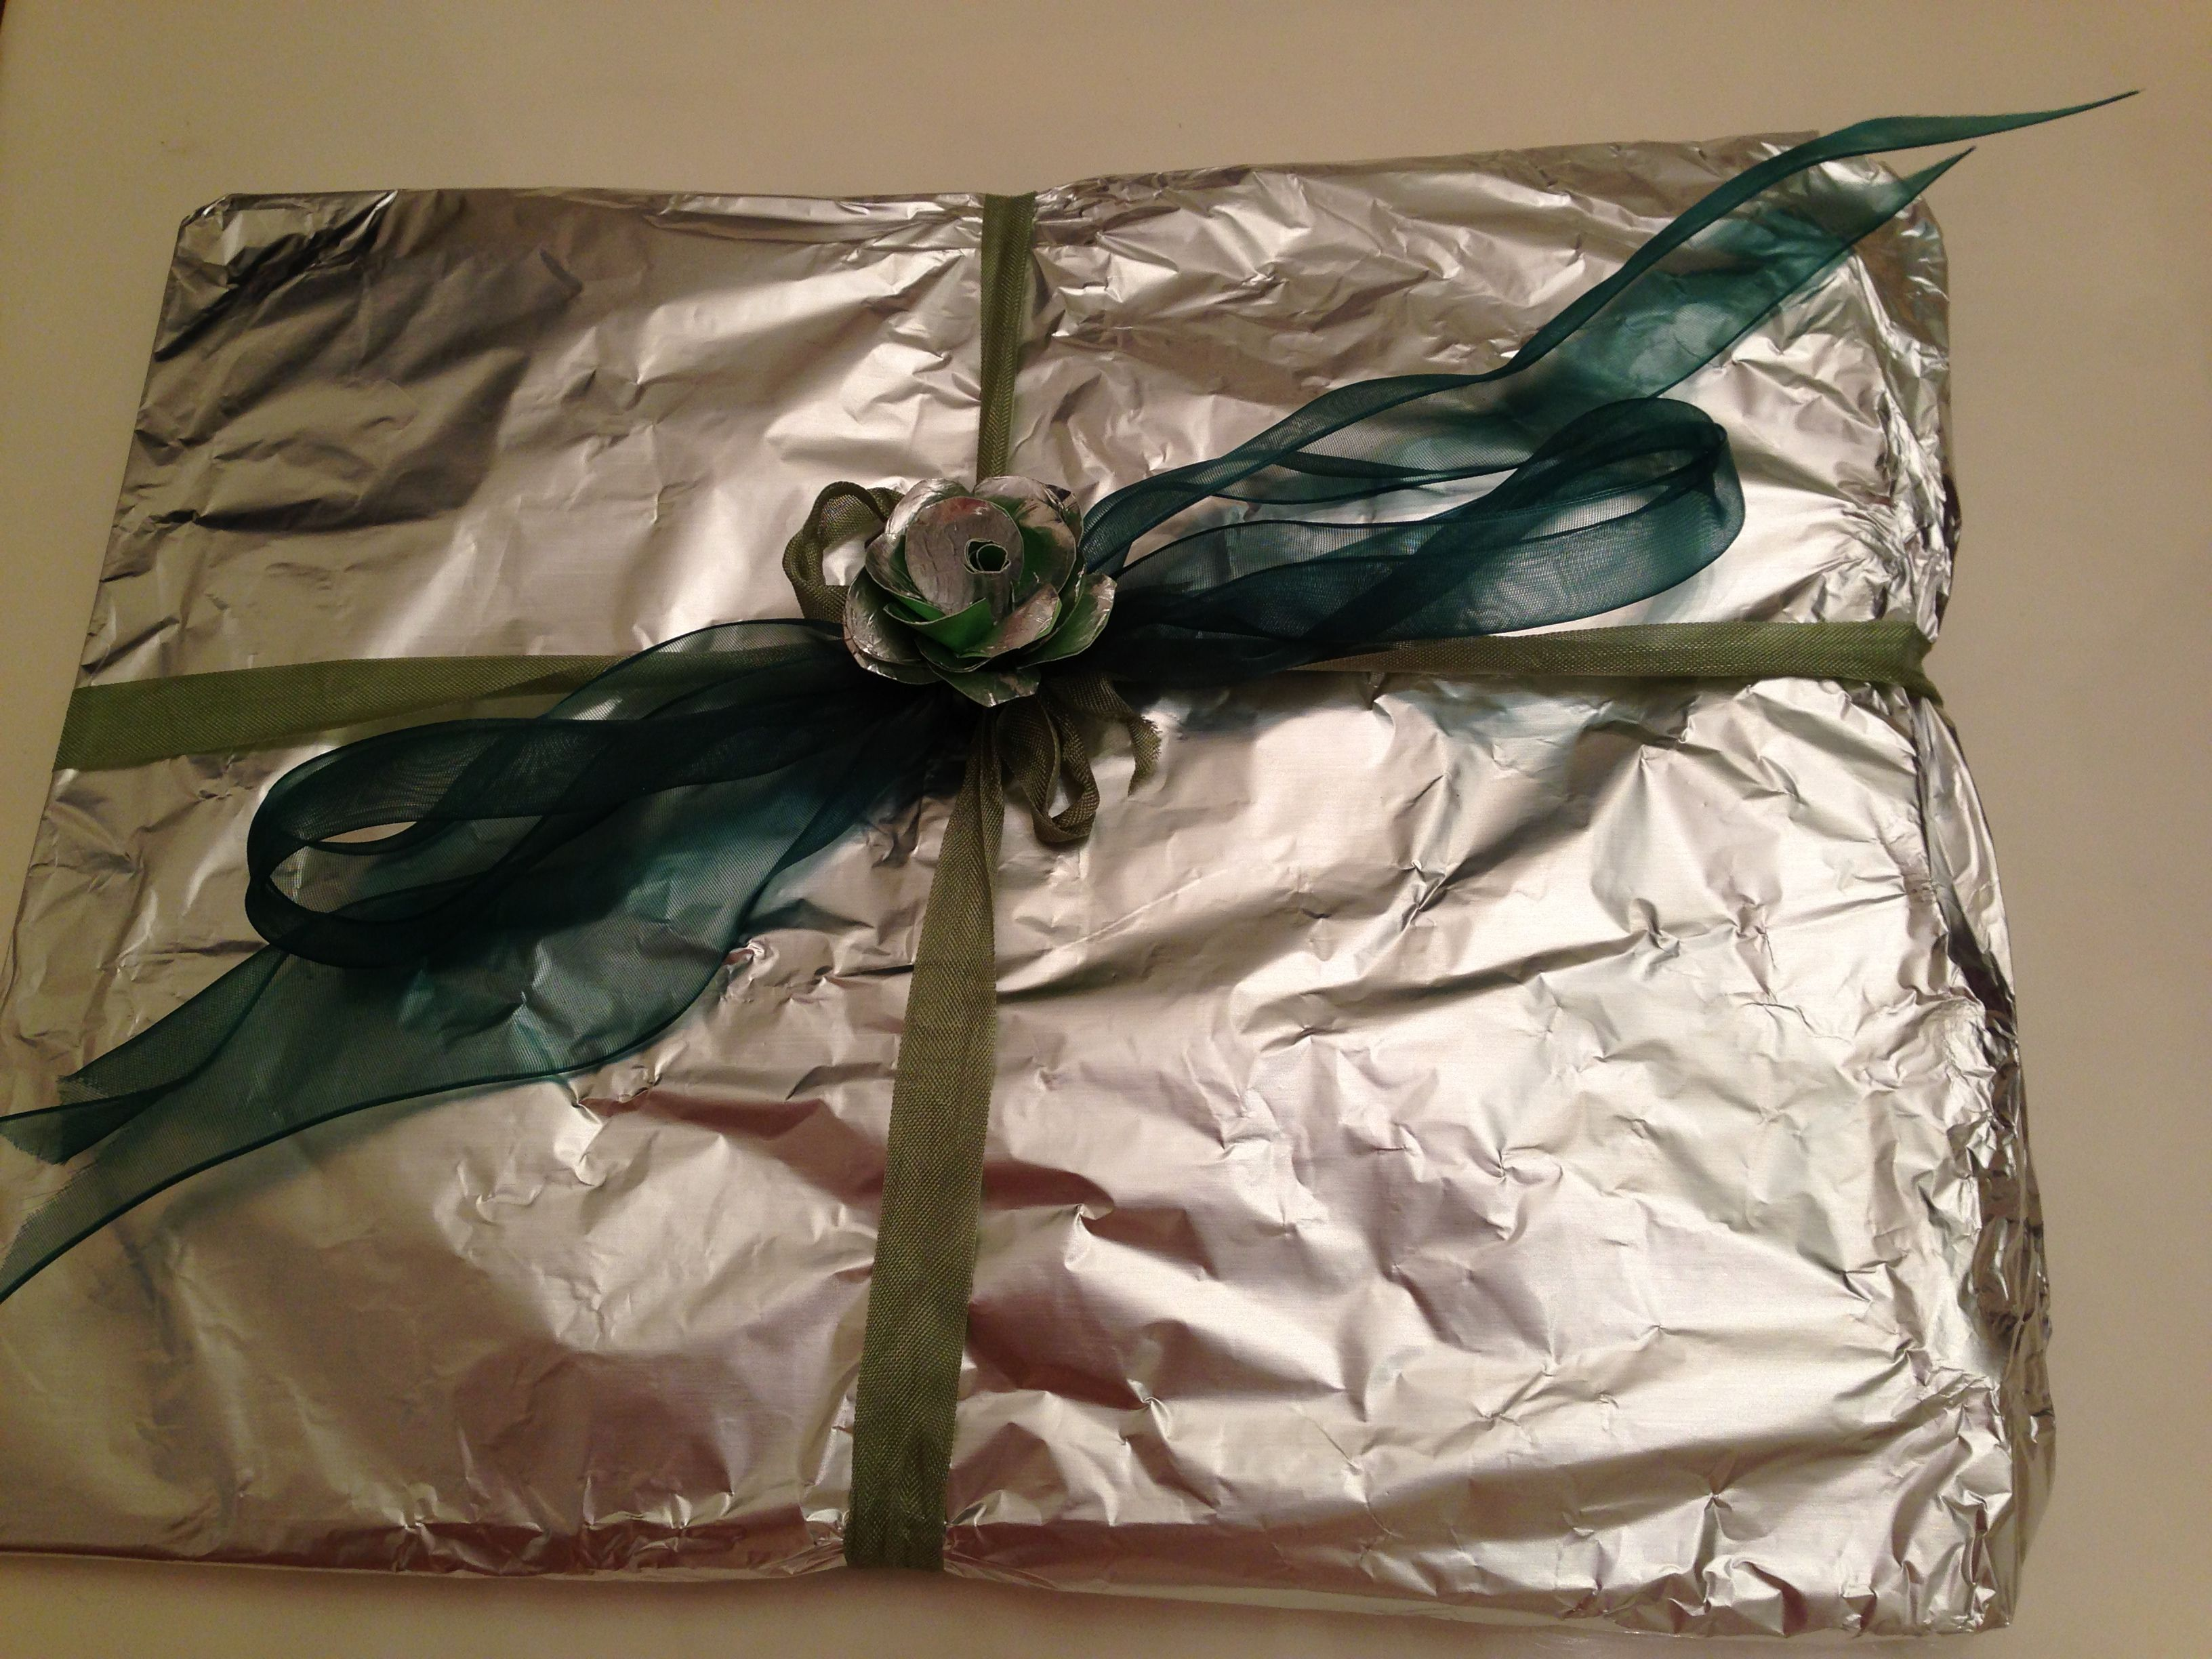 Tenth Anniversary Is The Tin Or Aluminum I Wrapped Gift In